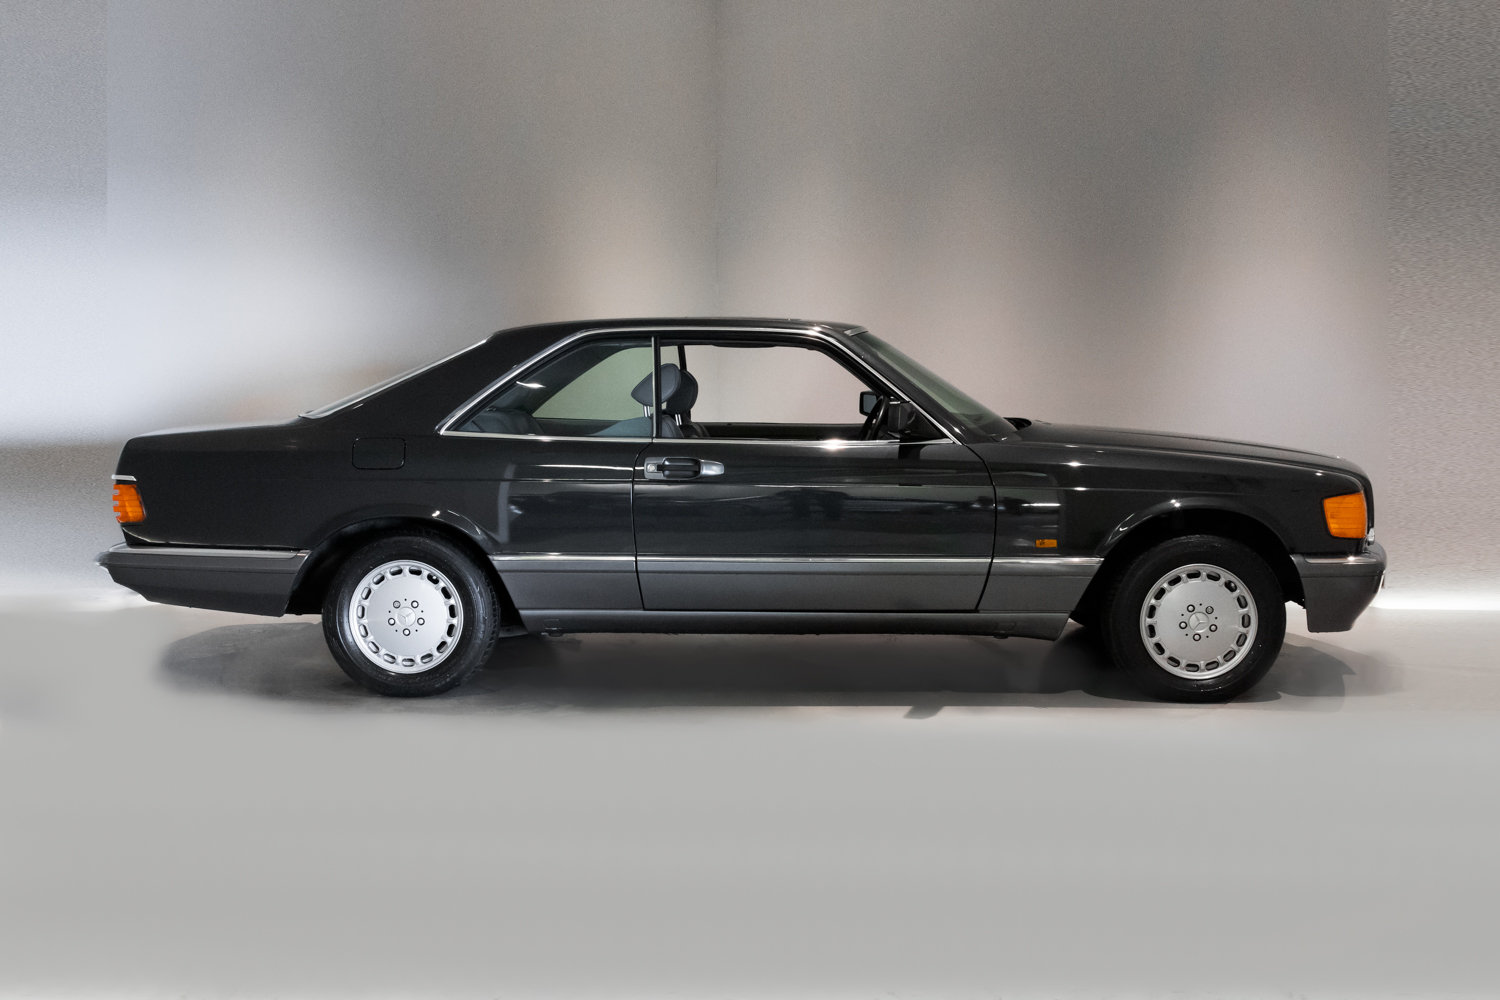 1990 *LOW MILES-THE BEST AVAILABLE* For Sale (picture 3 of 12)